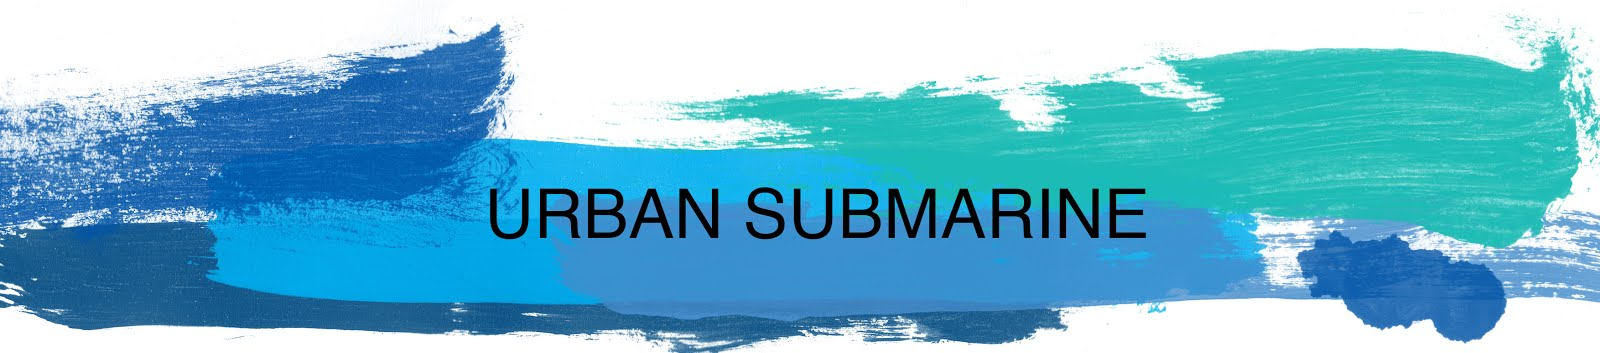 Urban Submarine